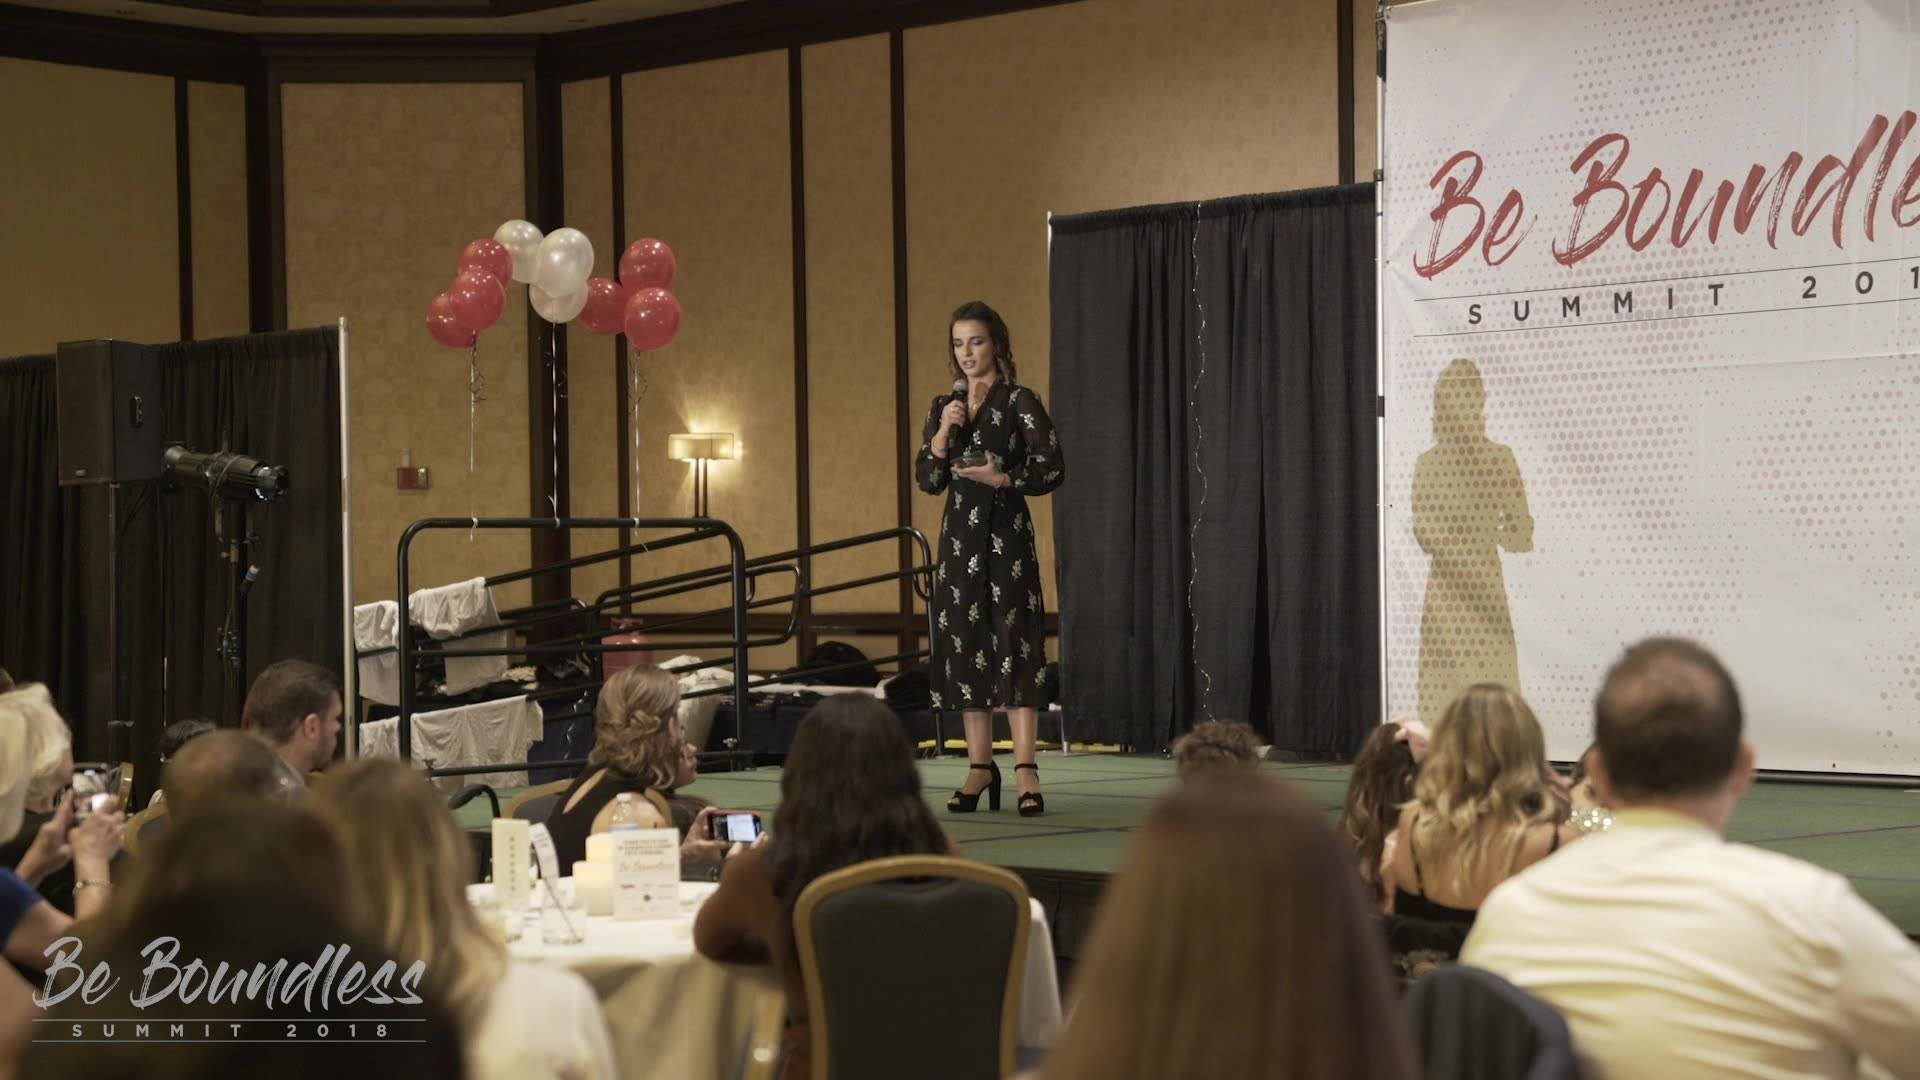 """""""Rock Your Disability"""" ~ Victoria Arlen (ESPN Host/Dancing with the Stars/Paralympian gold medalist)  Victoria was awarded the Breakthrough Award at the Be Boundless Summit presented by the Rollettes Experience. Watch her amazing acceptance speech. #"""